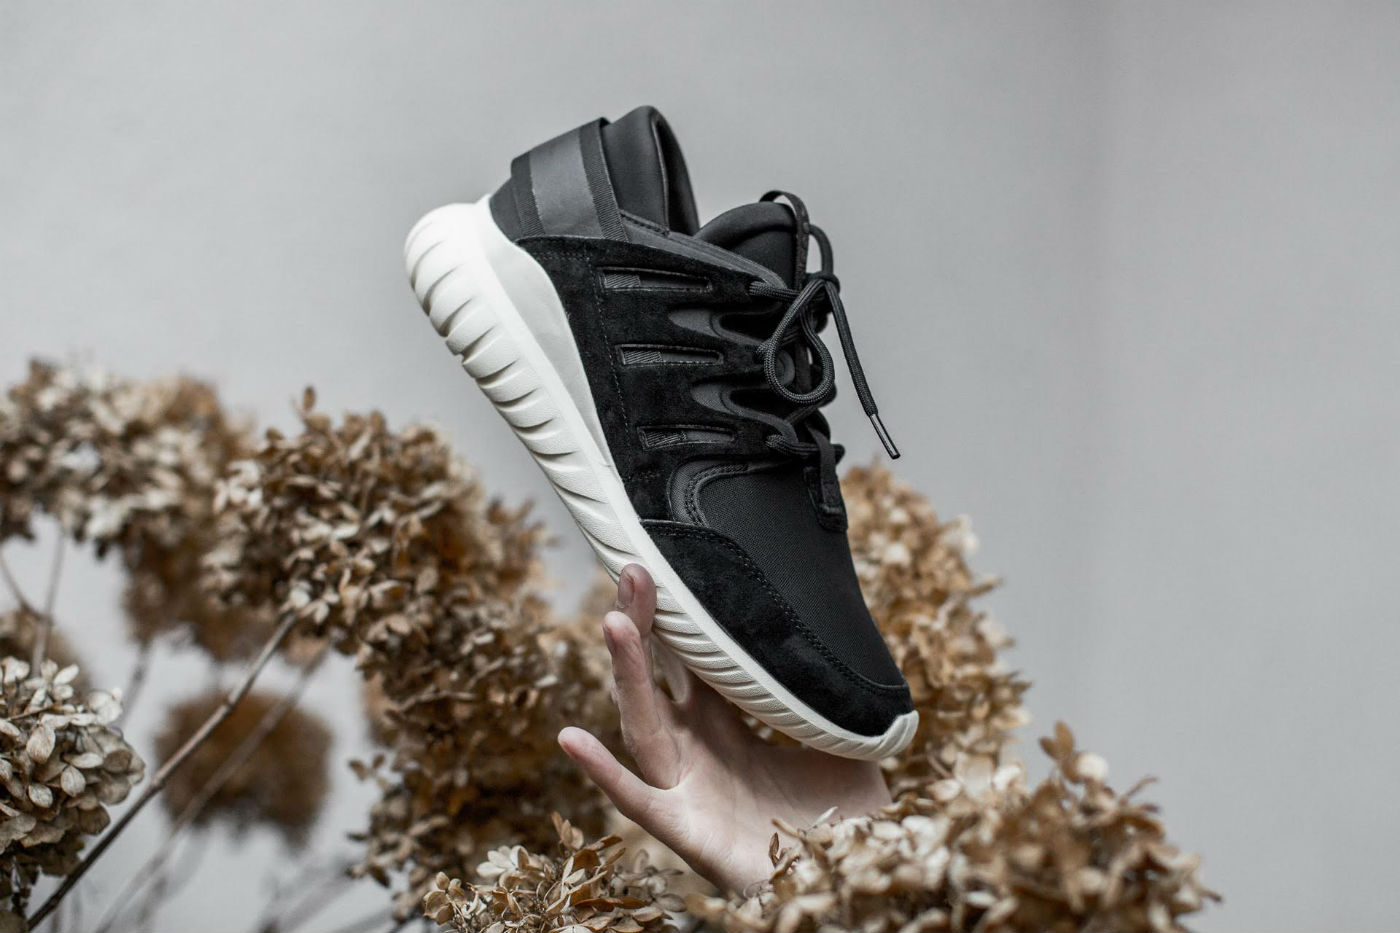 Adidas Tubular Runner Prime Knit (Stone & Vintage White) End